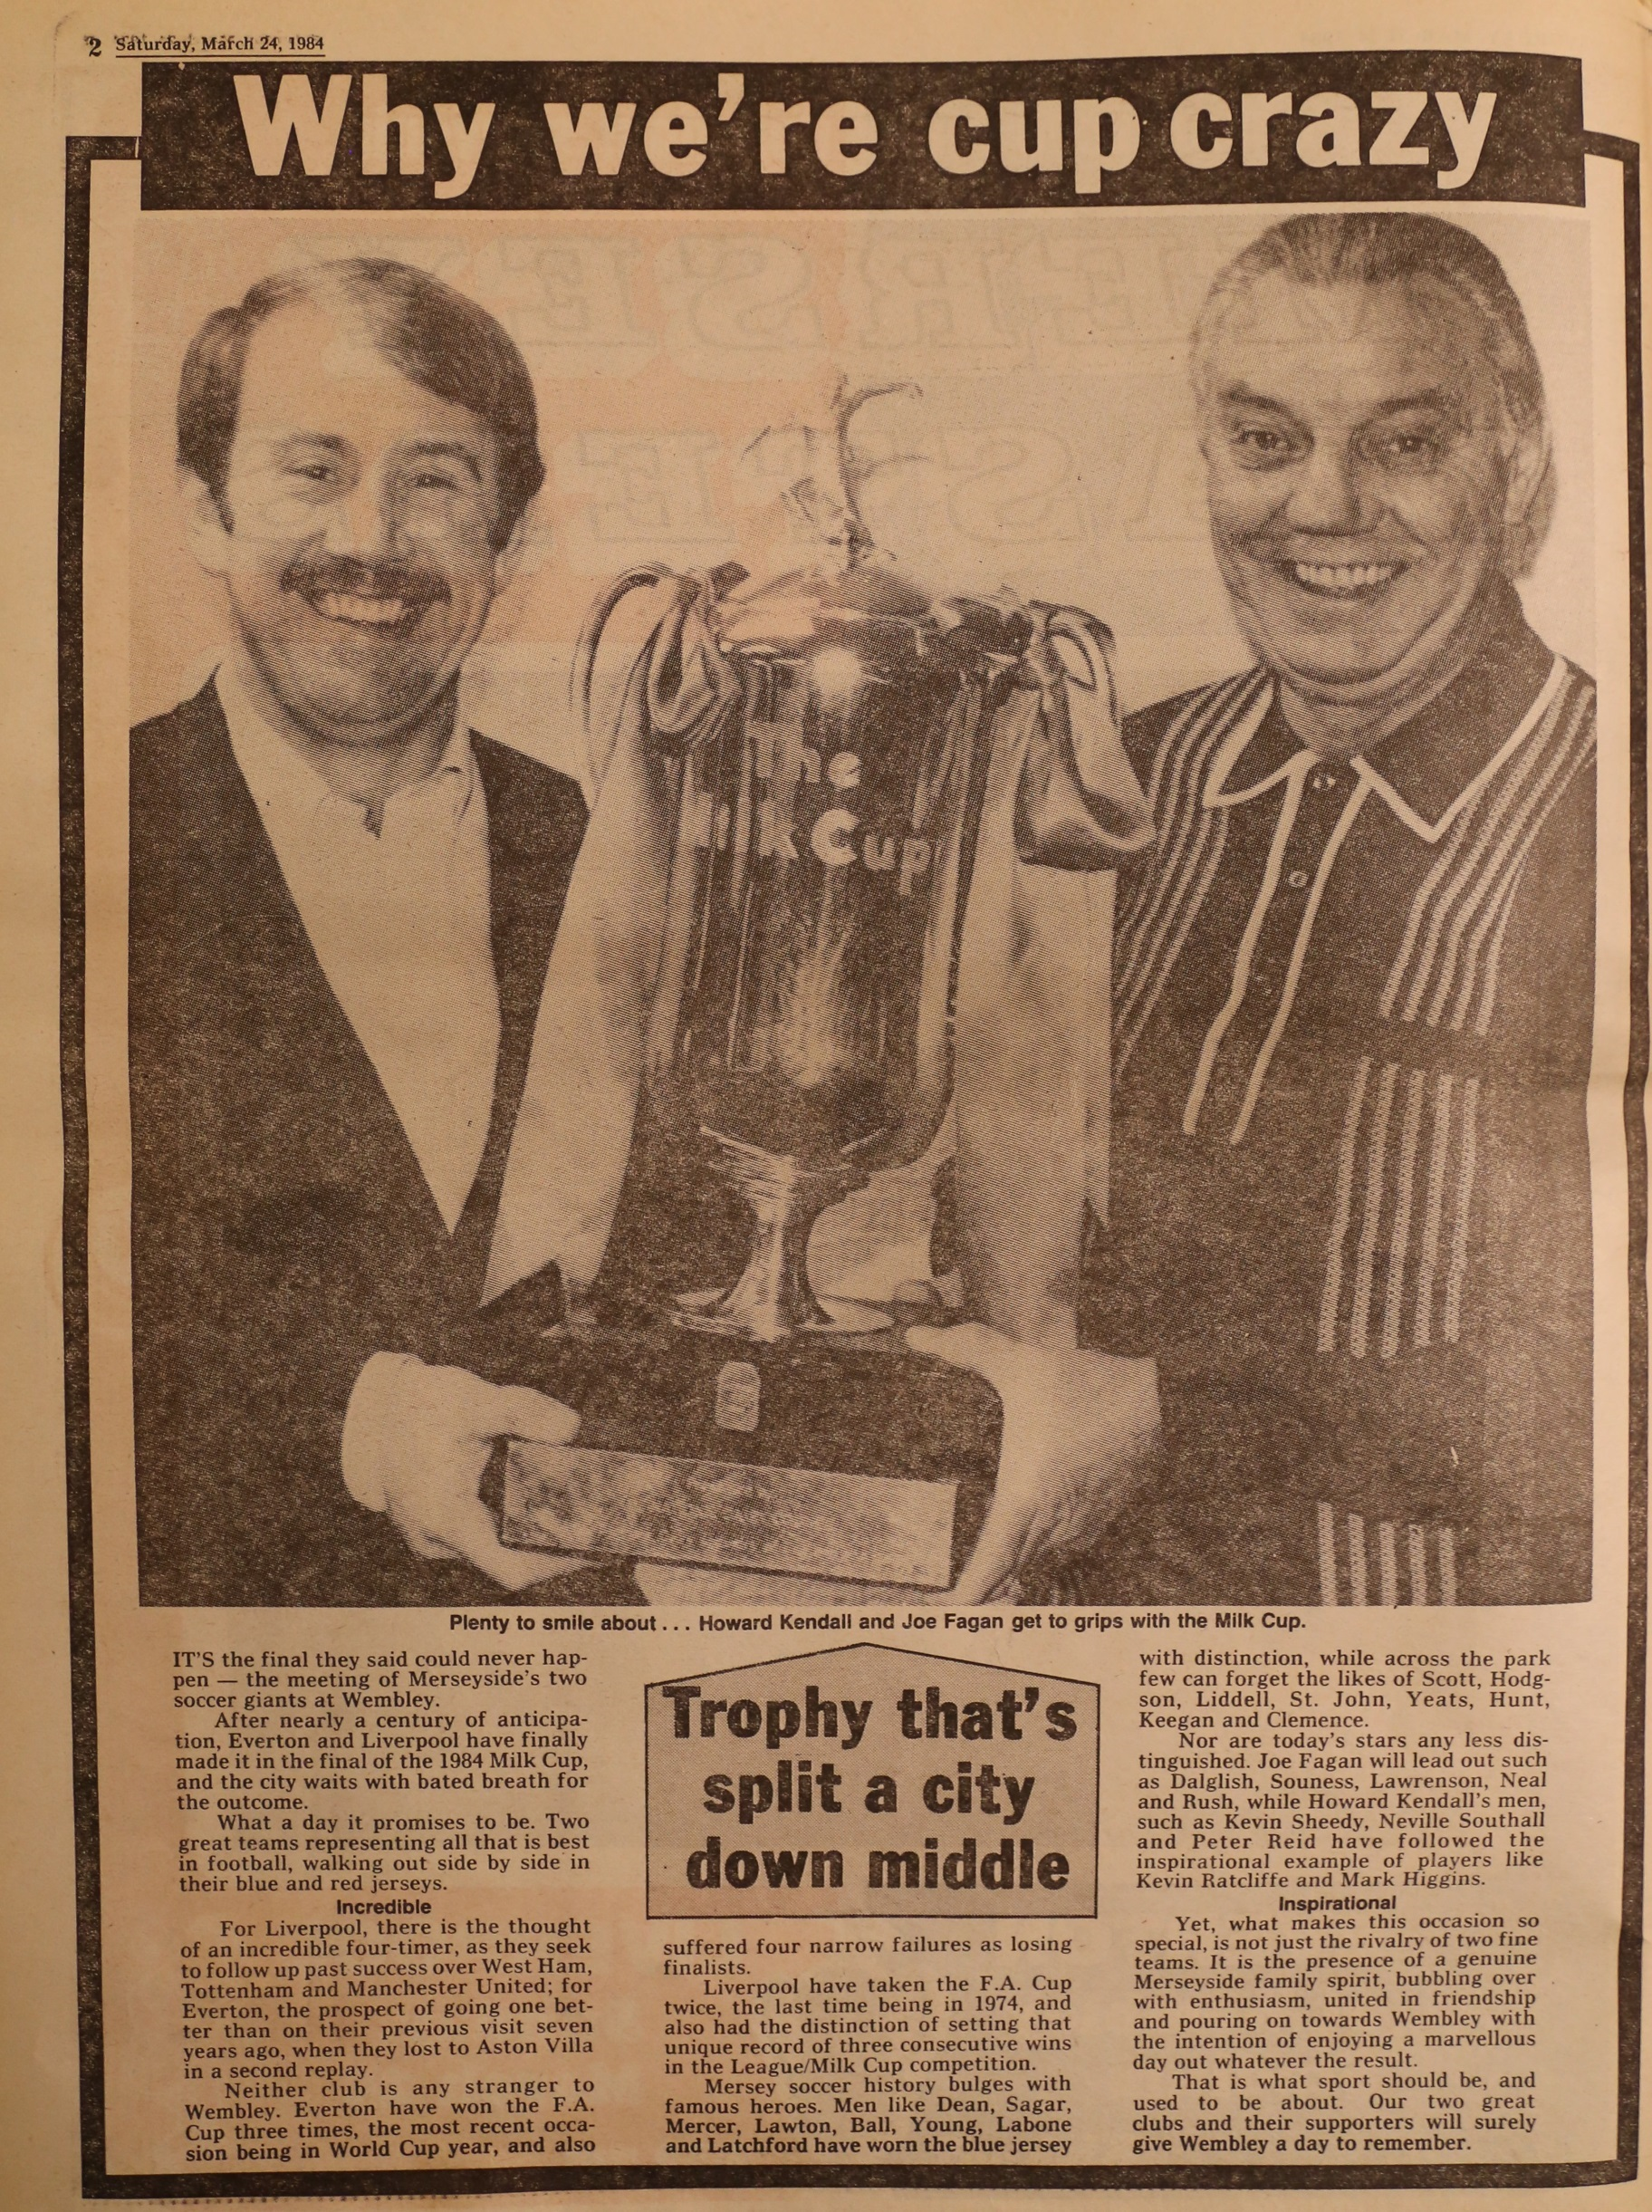 Why we're cup crazy! - 24 March 1984